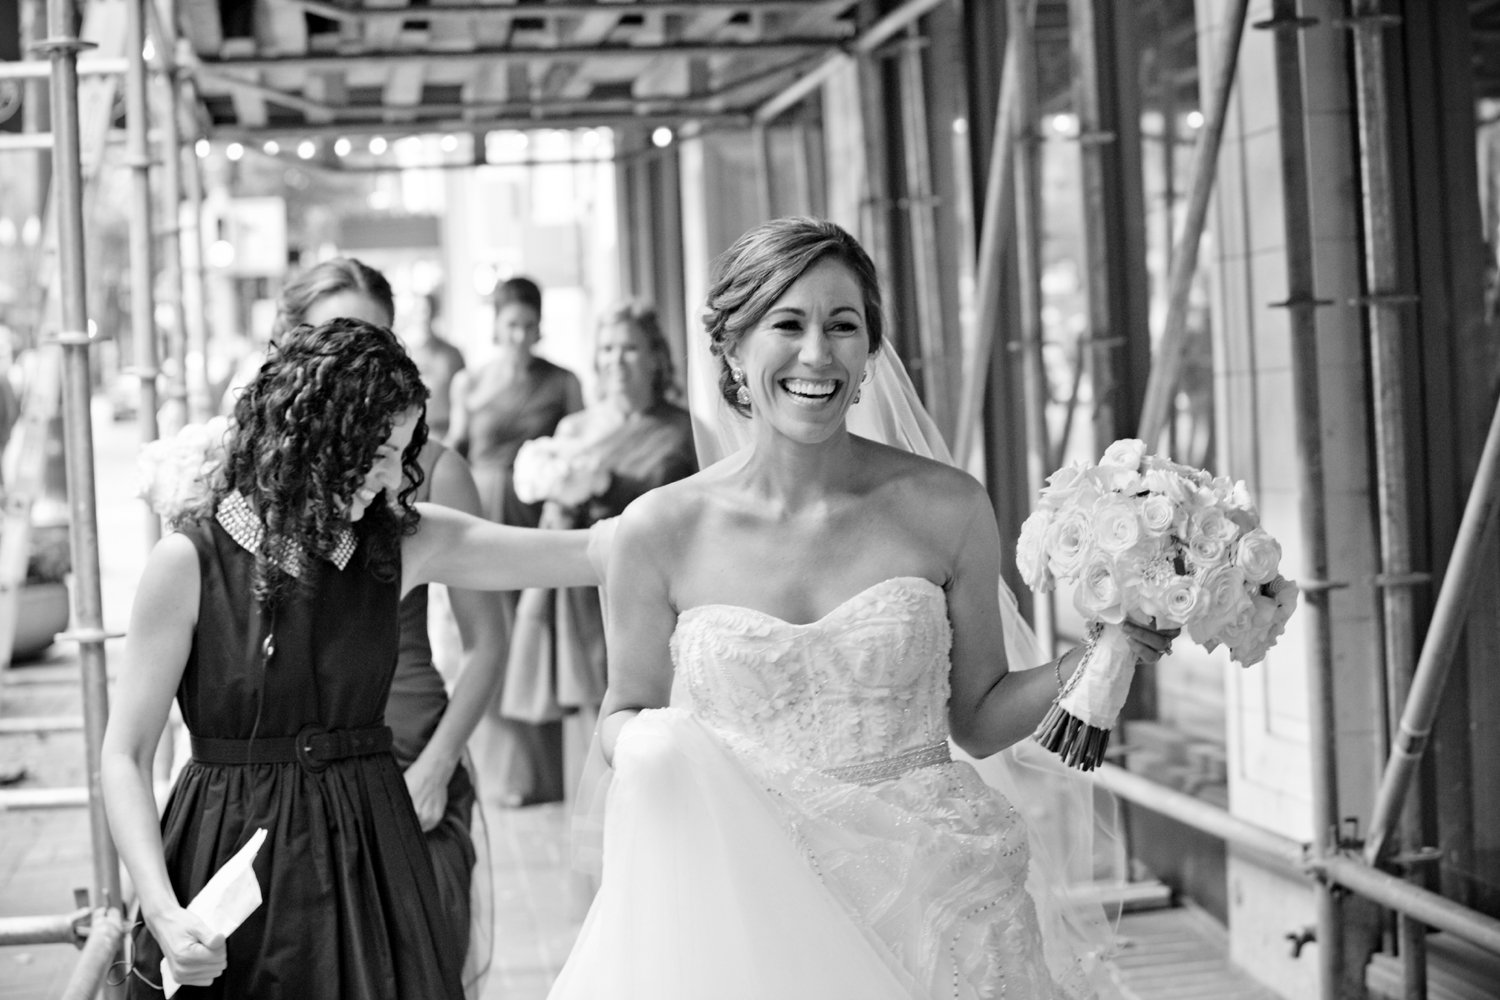 Bridal Bliss.com | Portland Seattle Wedding Planning + Design | Lauren B Photography